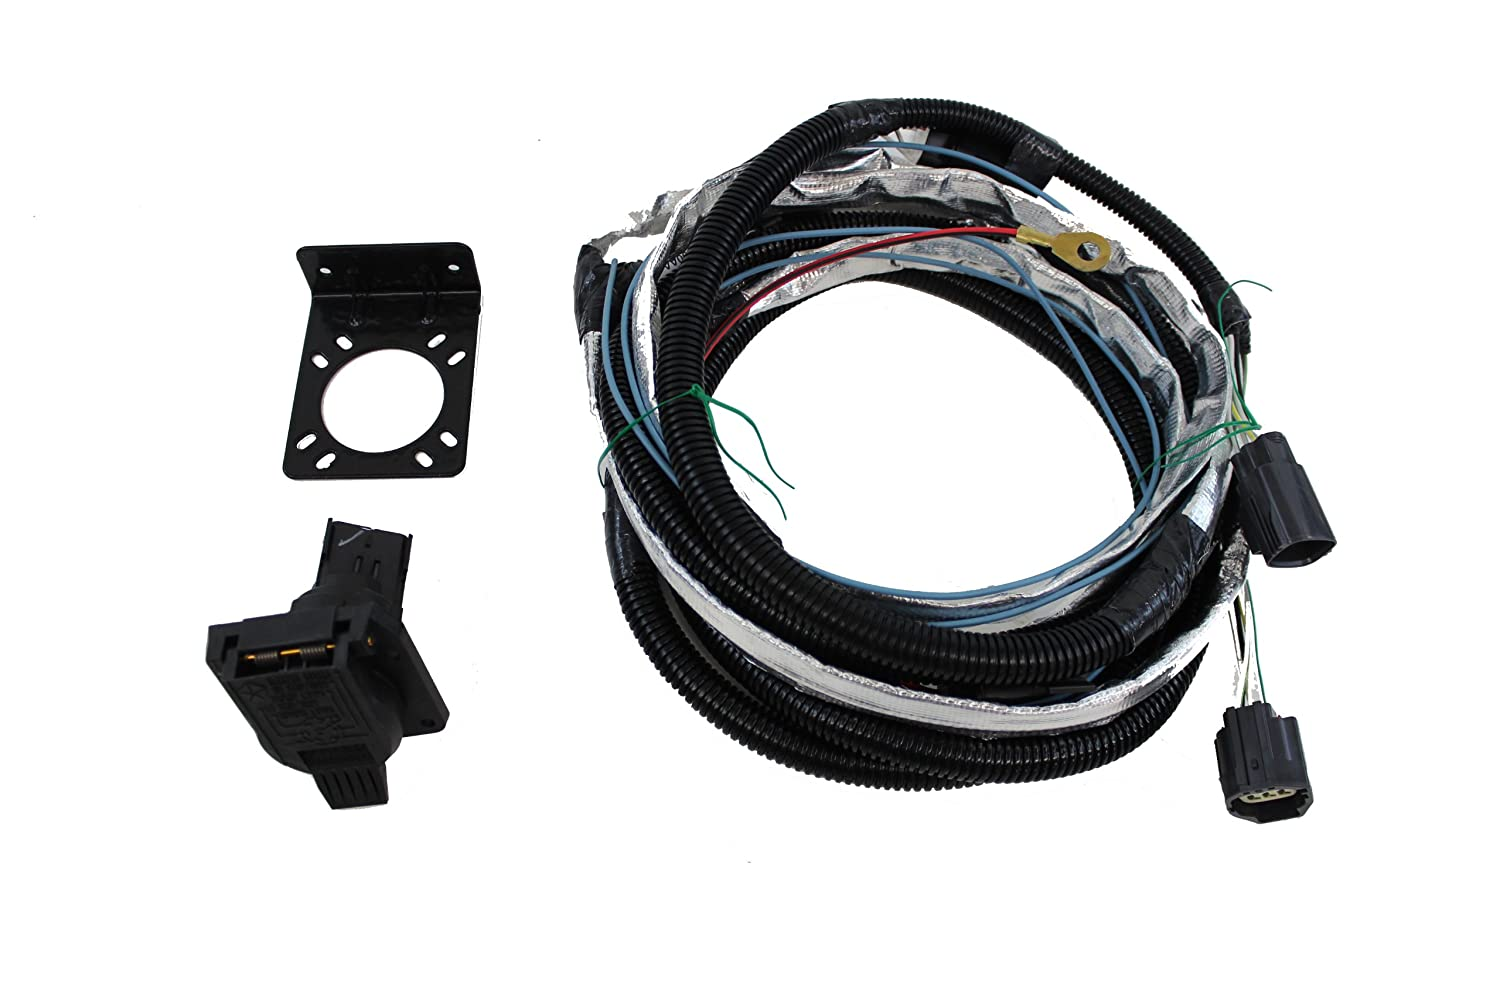 Amazon.com: Genuine Jeep Accessories 82210214AB Trailer Tow Wiring Harness:  Automotive